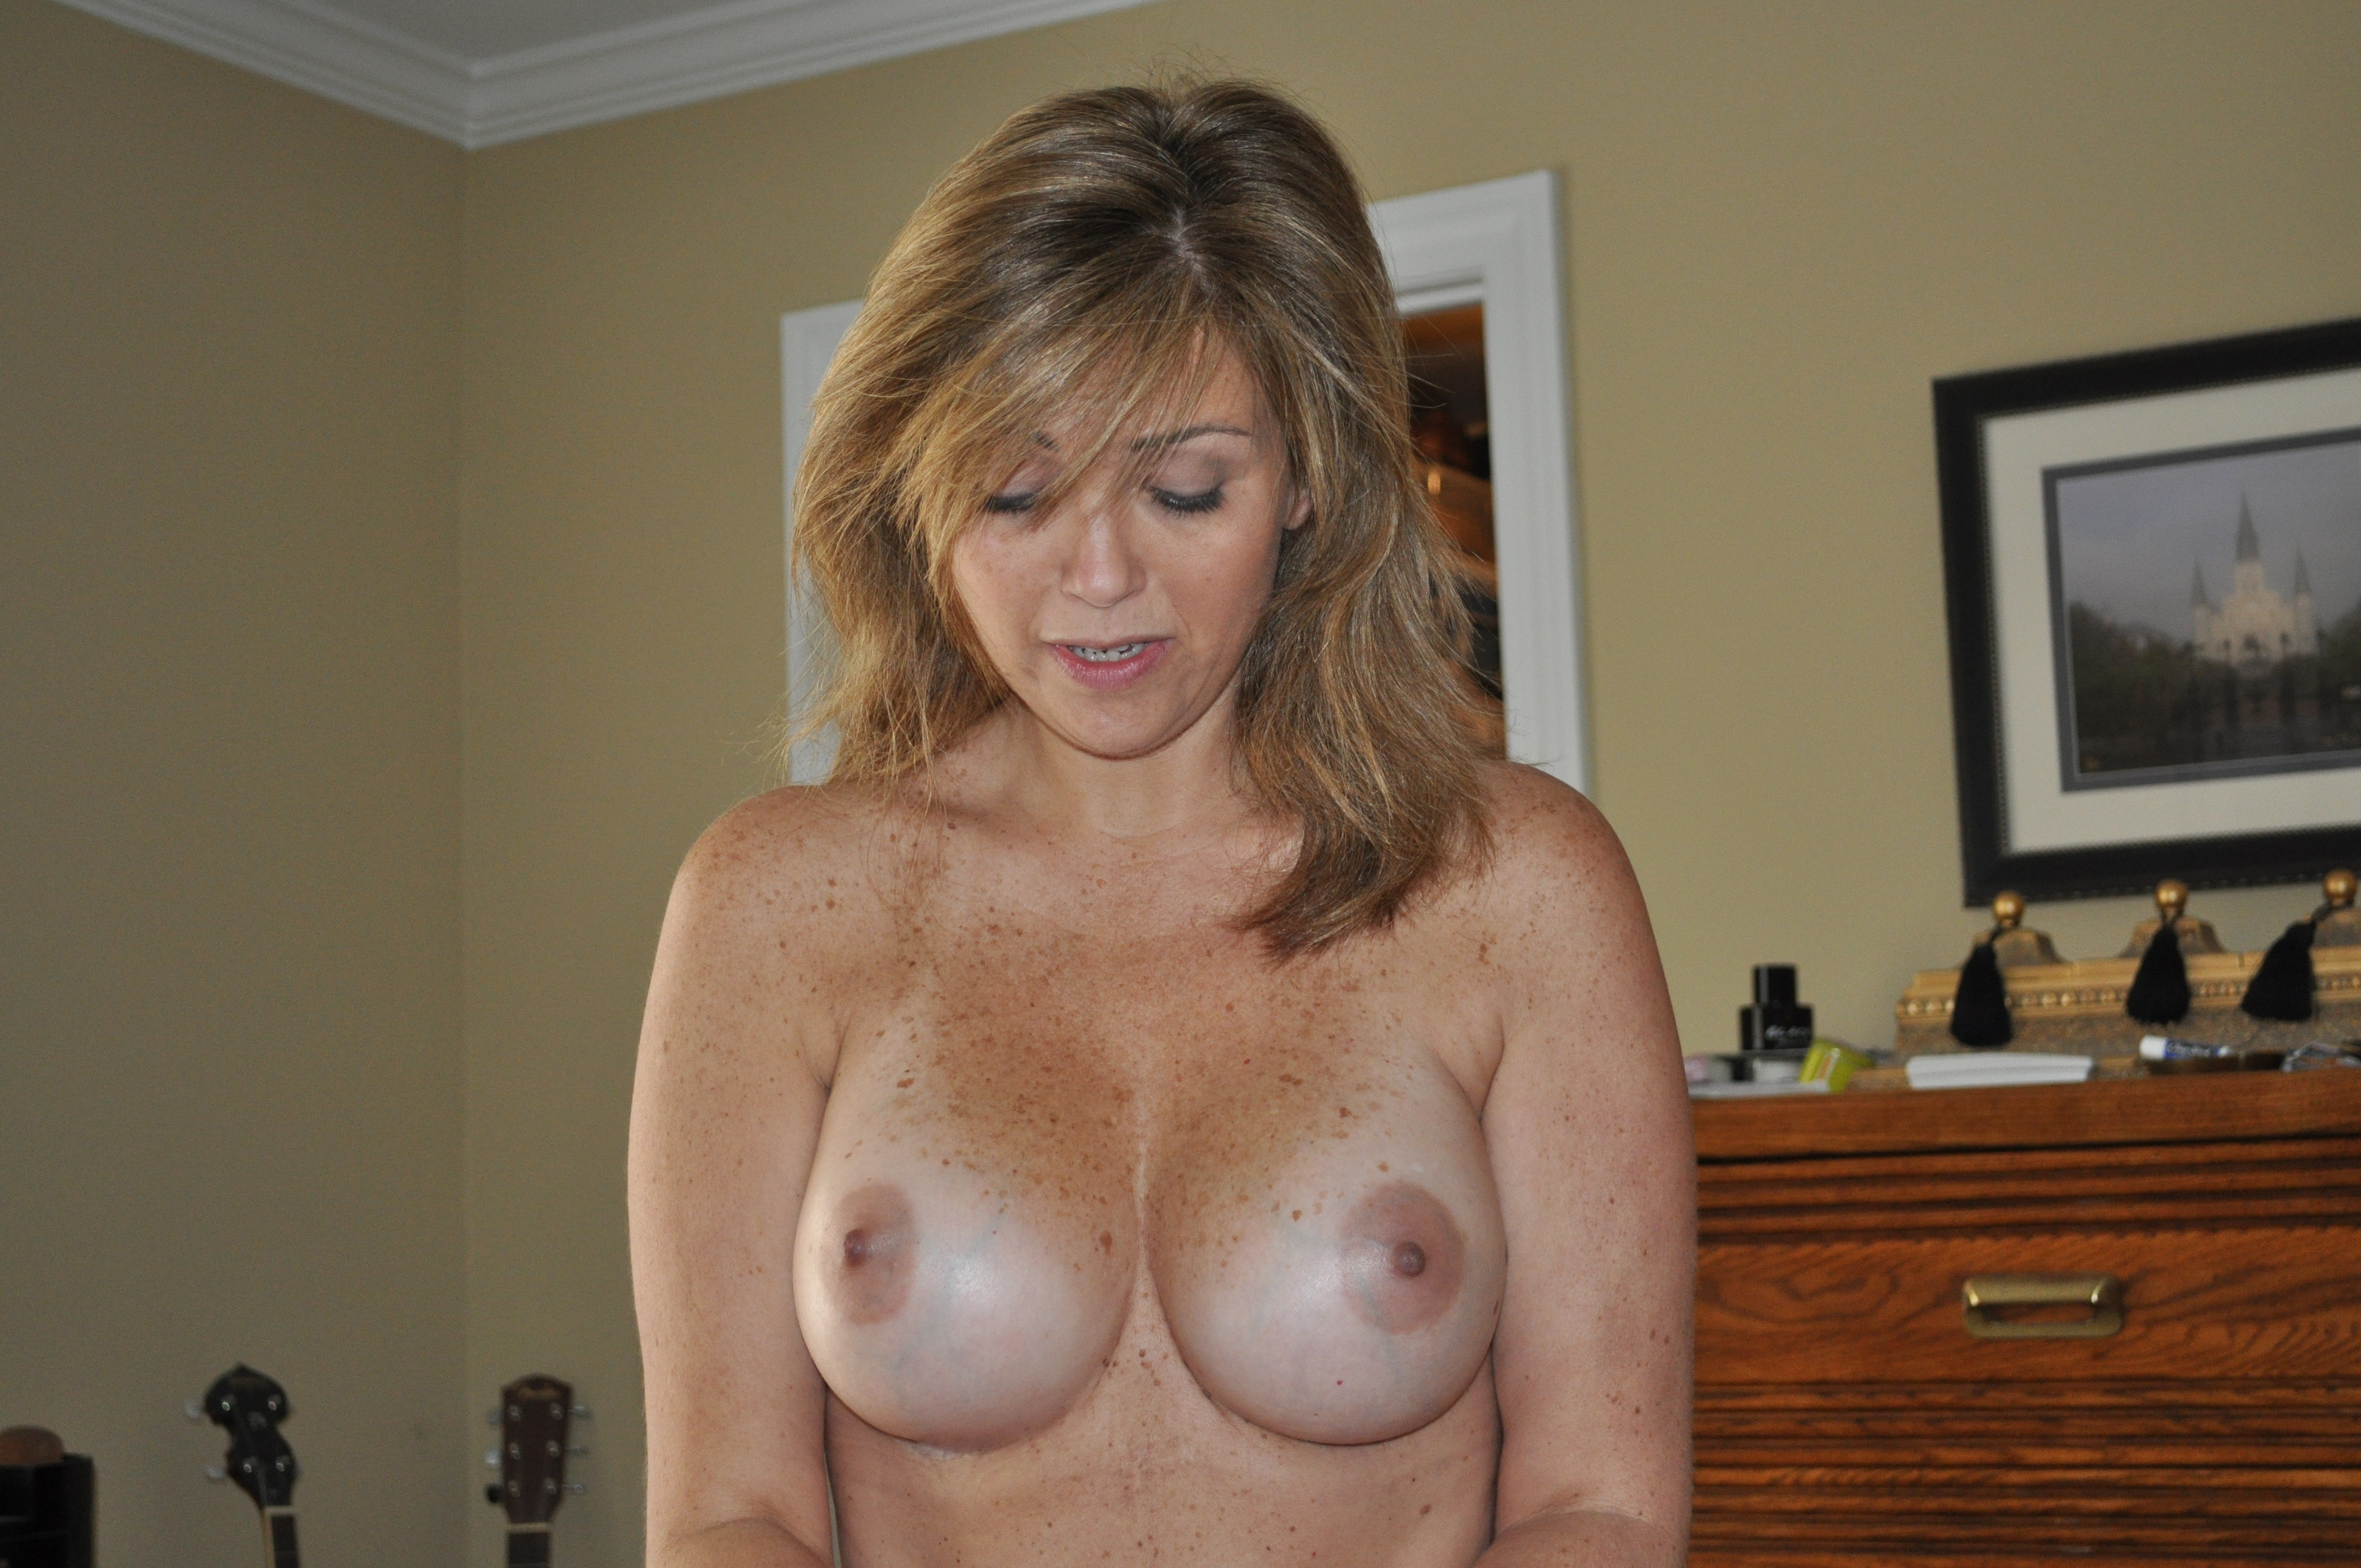 Remarkable, ftee small tits freckles pics